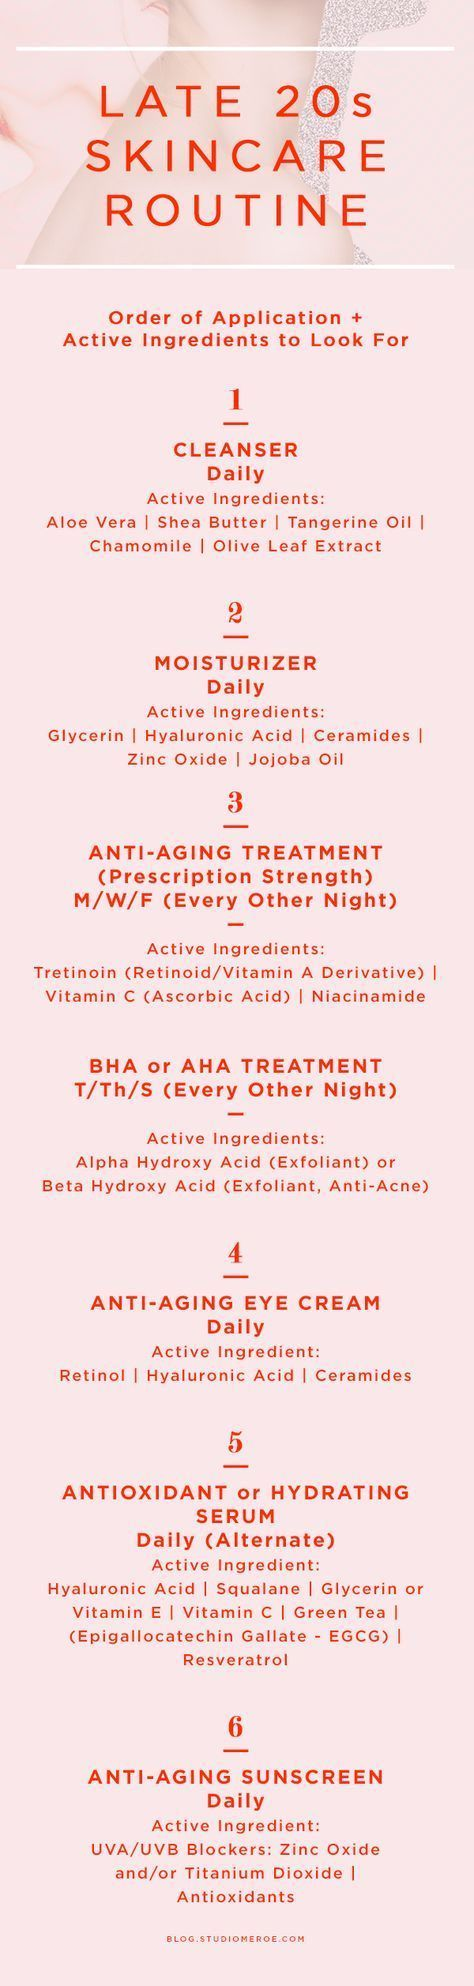 Late 20s skin care routine | Order of application + active ingredients to look for | skin care tips | anti-aging | @studiomeroe | Read more here: www.studiomeroe.com